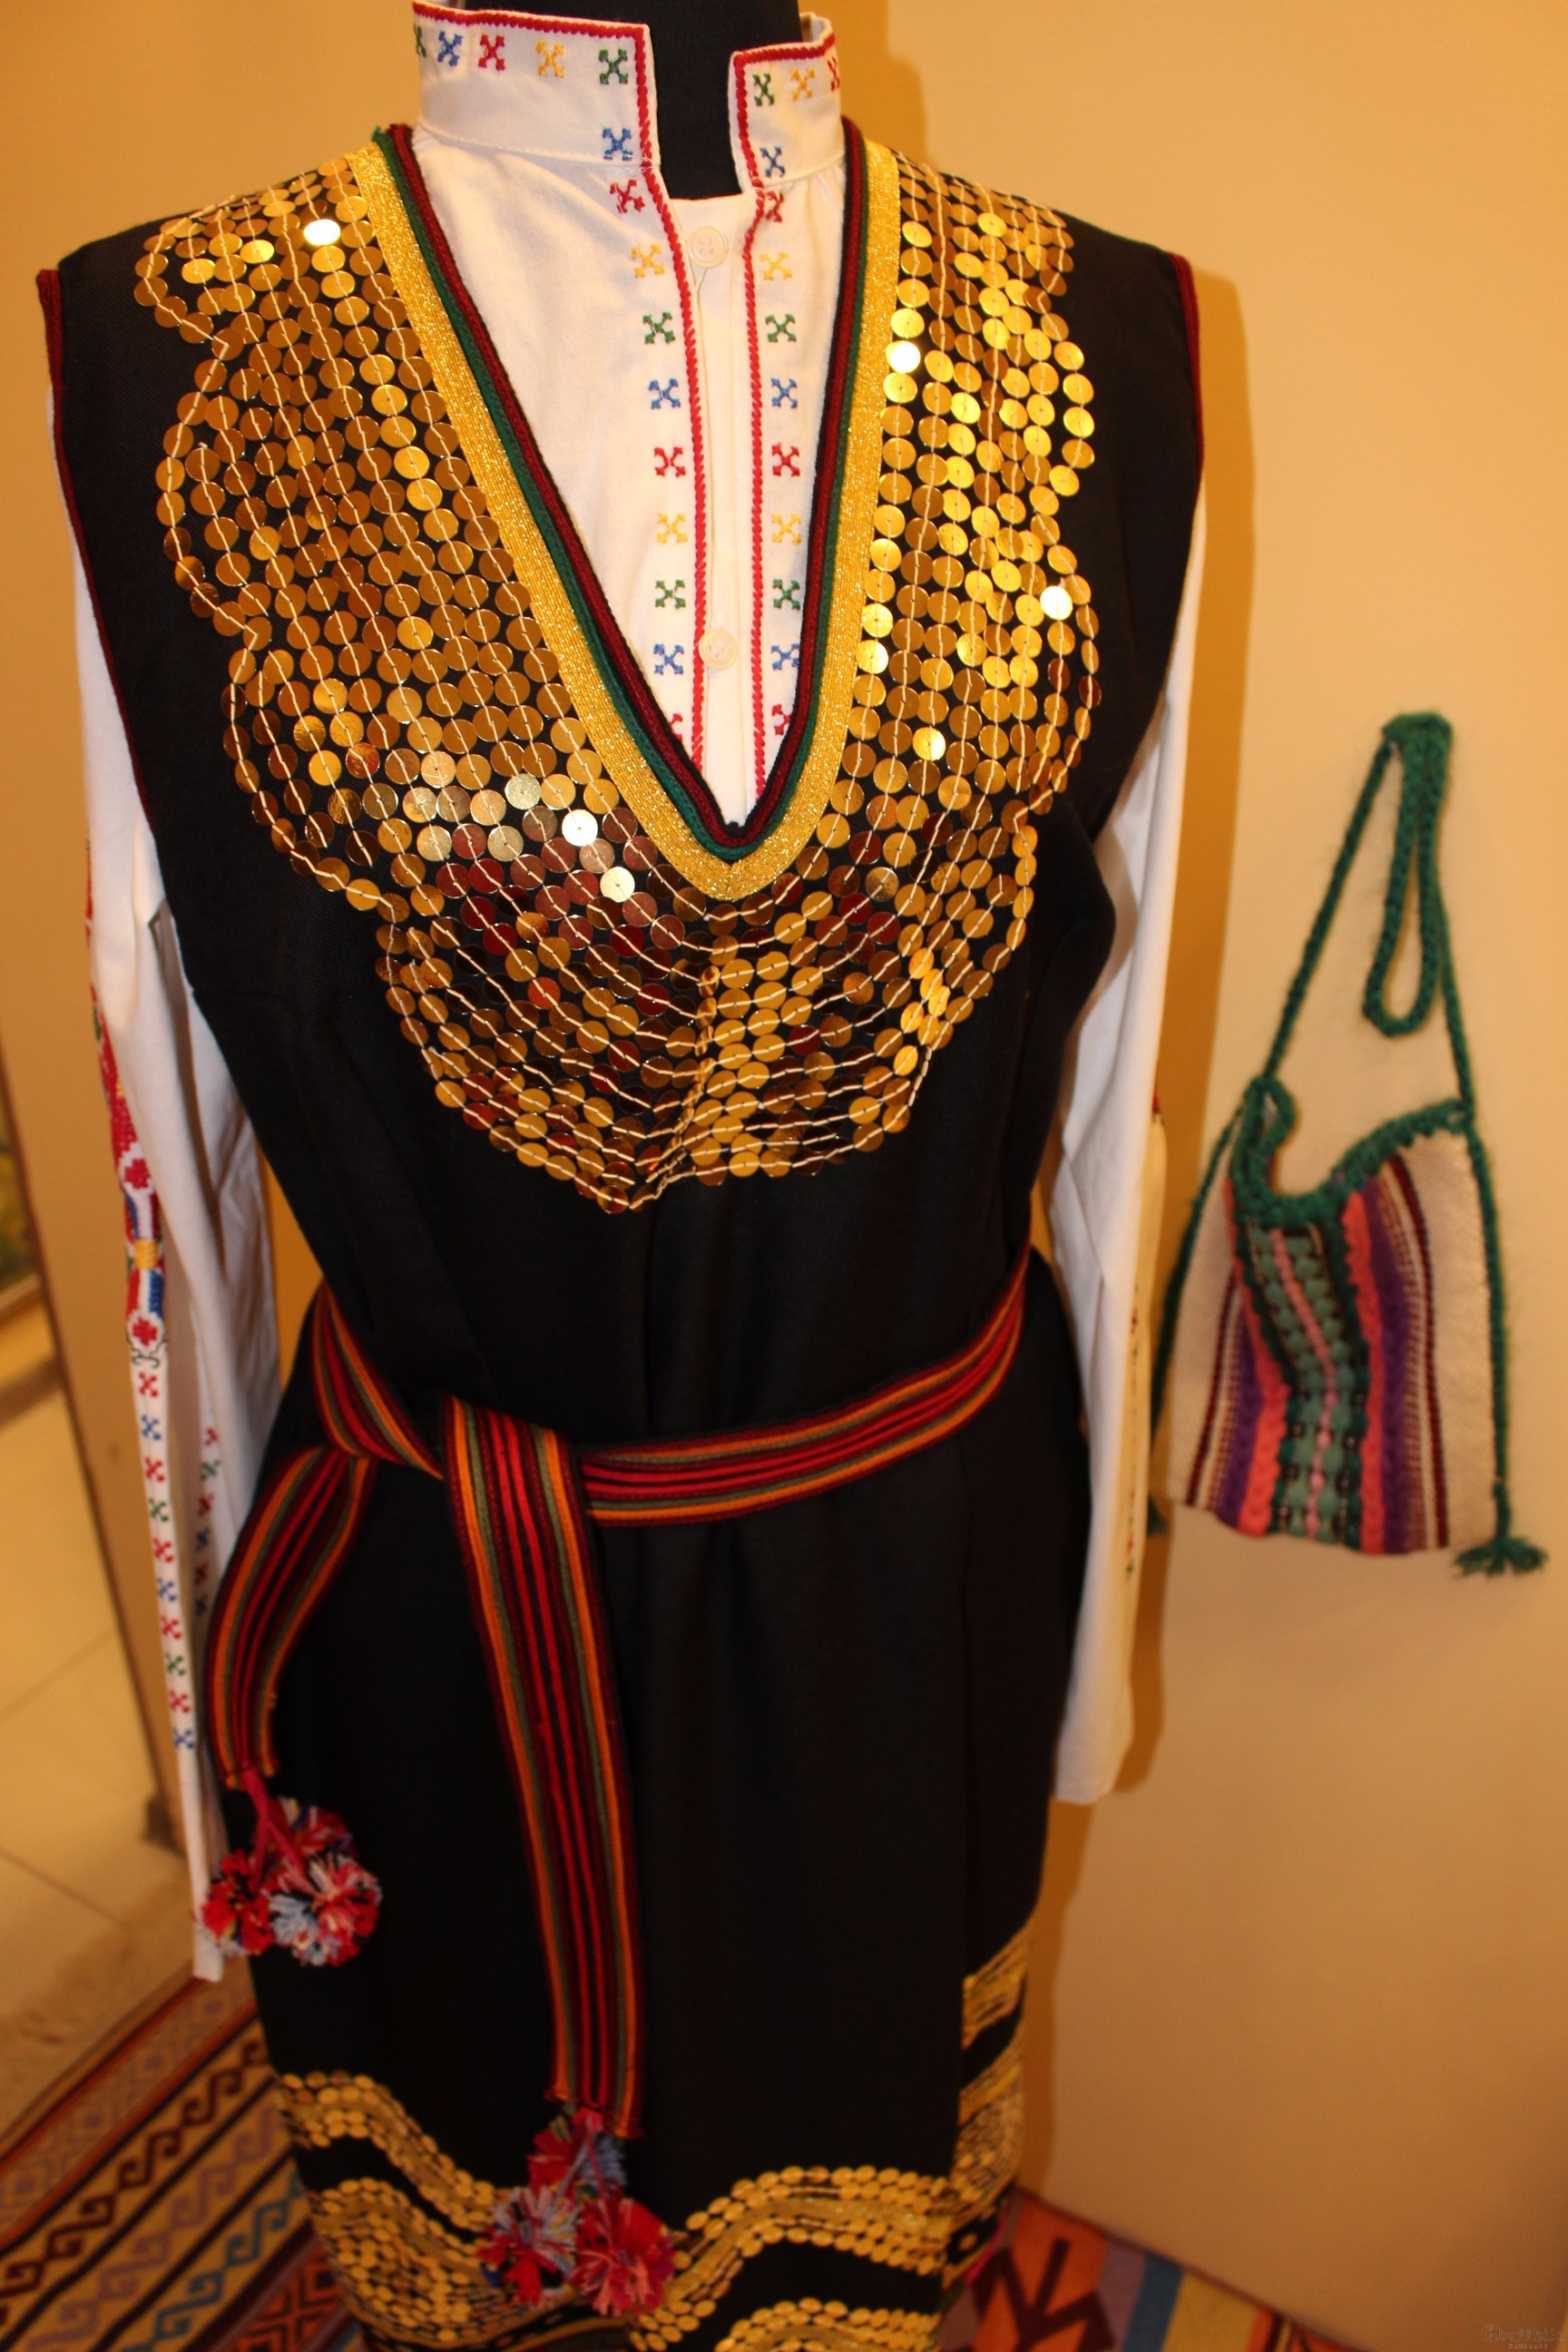 Bulgarian folk costume - Shoppish women's folk costume